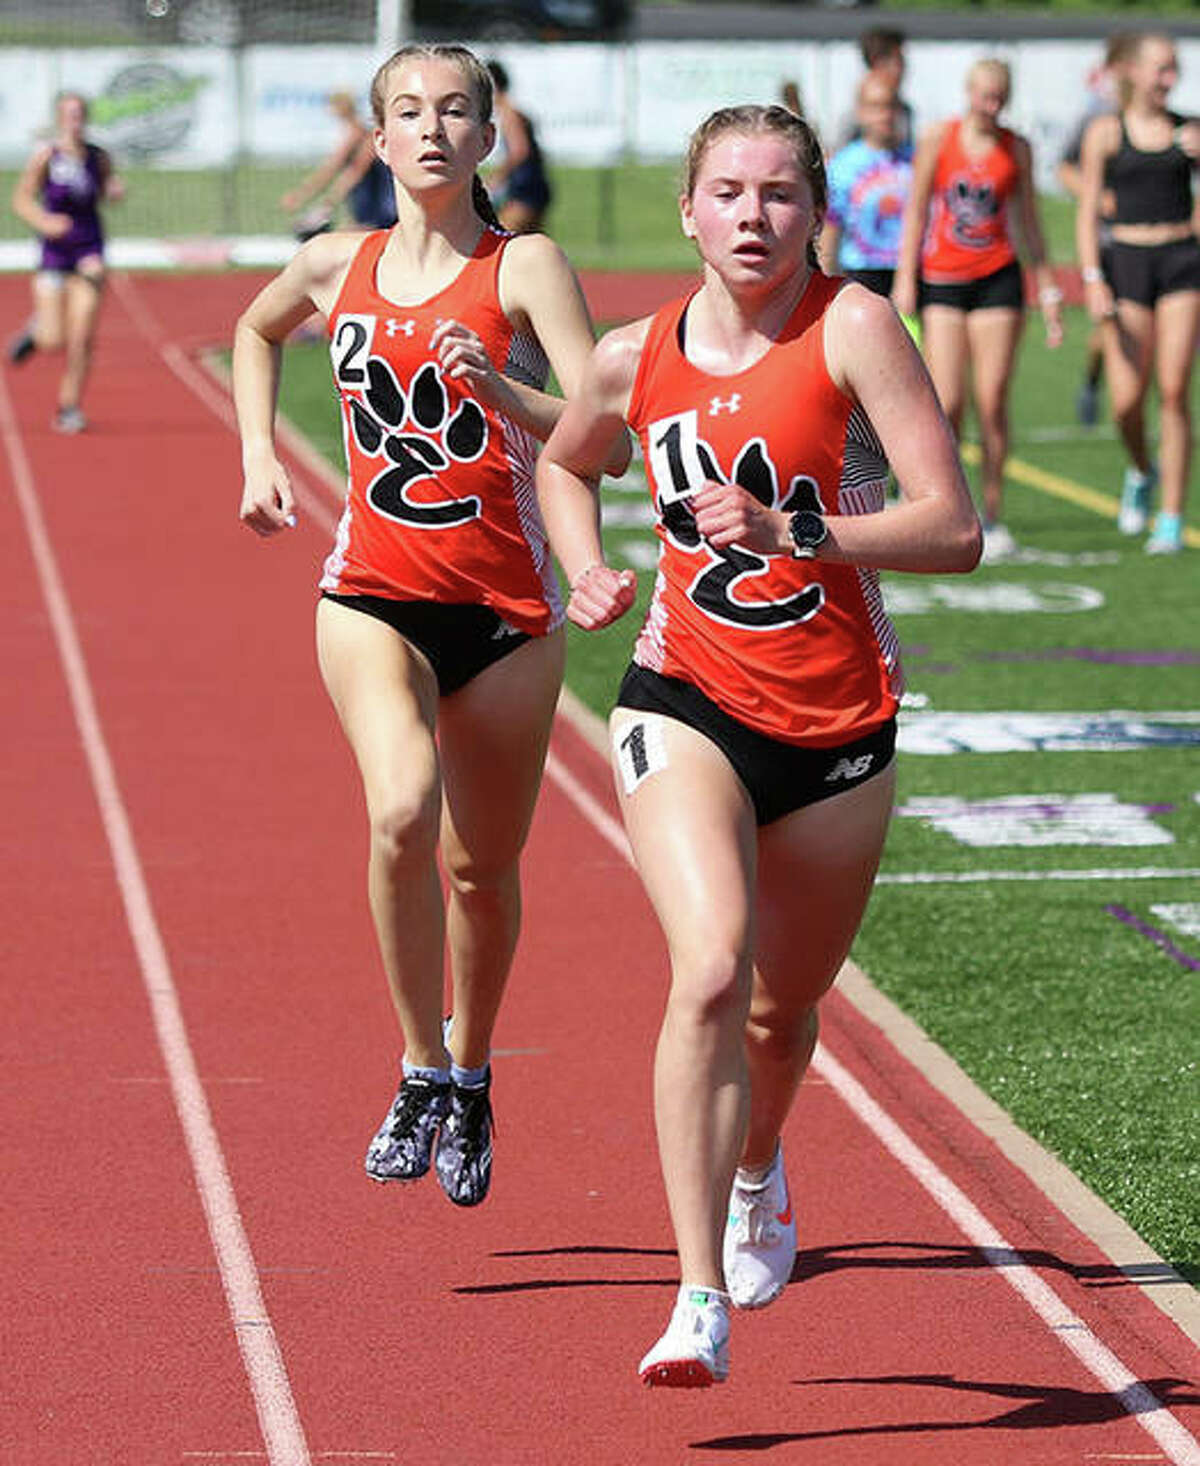 Edwardsville's Riley Knoyle, right, and Maya Lueking compete in the 1,600-meter run at the Southwestern Conference Meet on Wednesday in Collinsville.